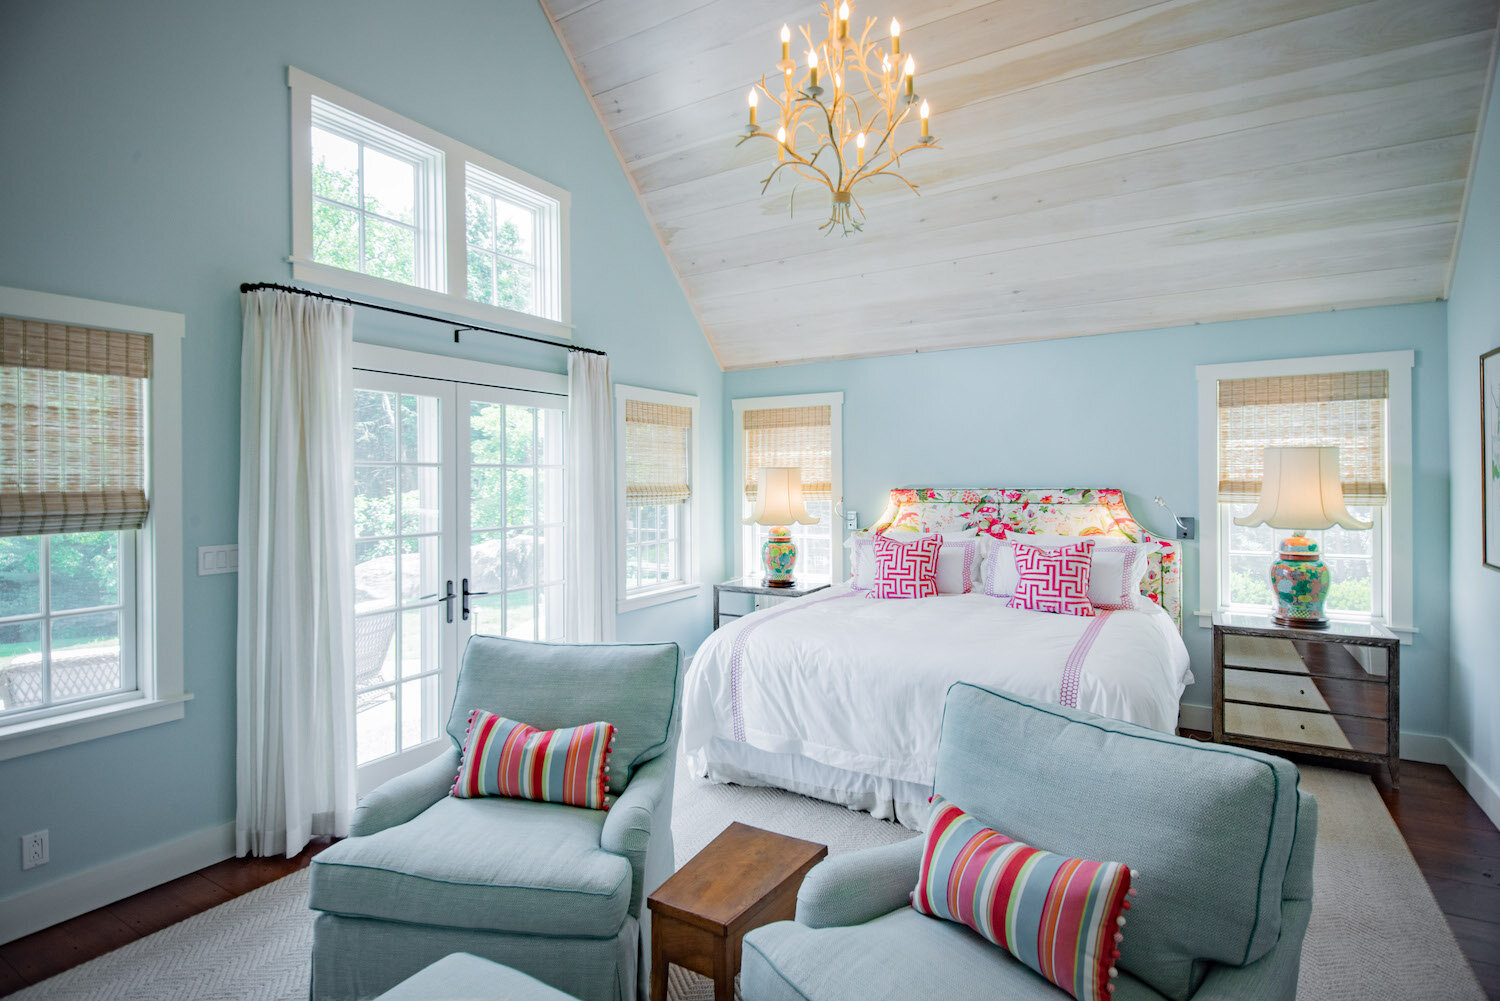 stratton-master-bedroom-interior-architect.jpg